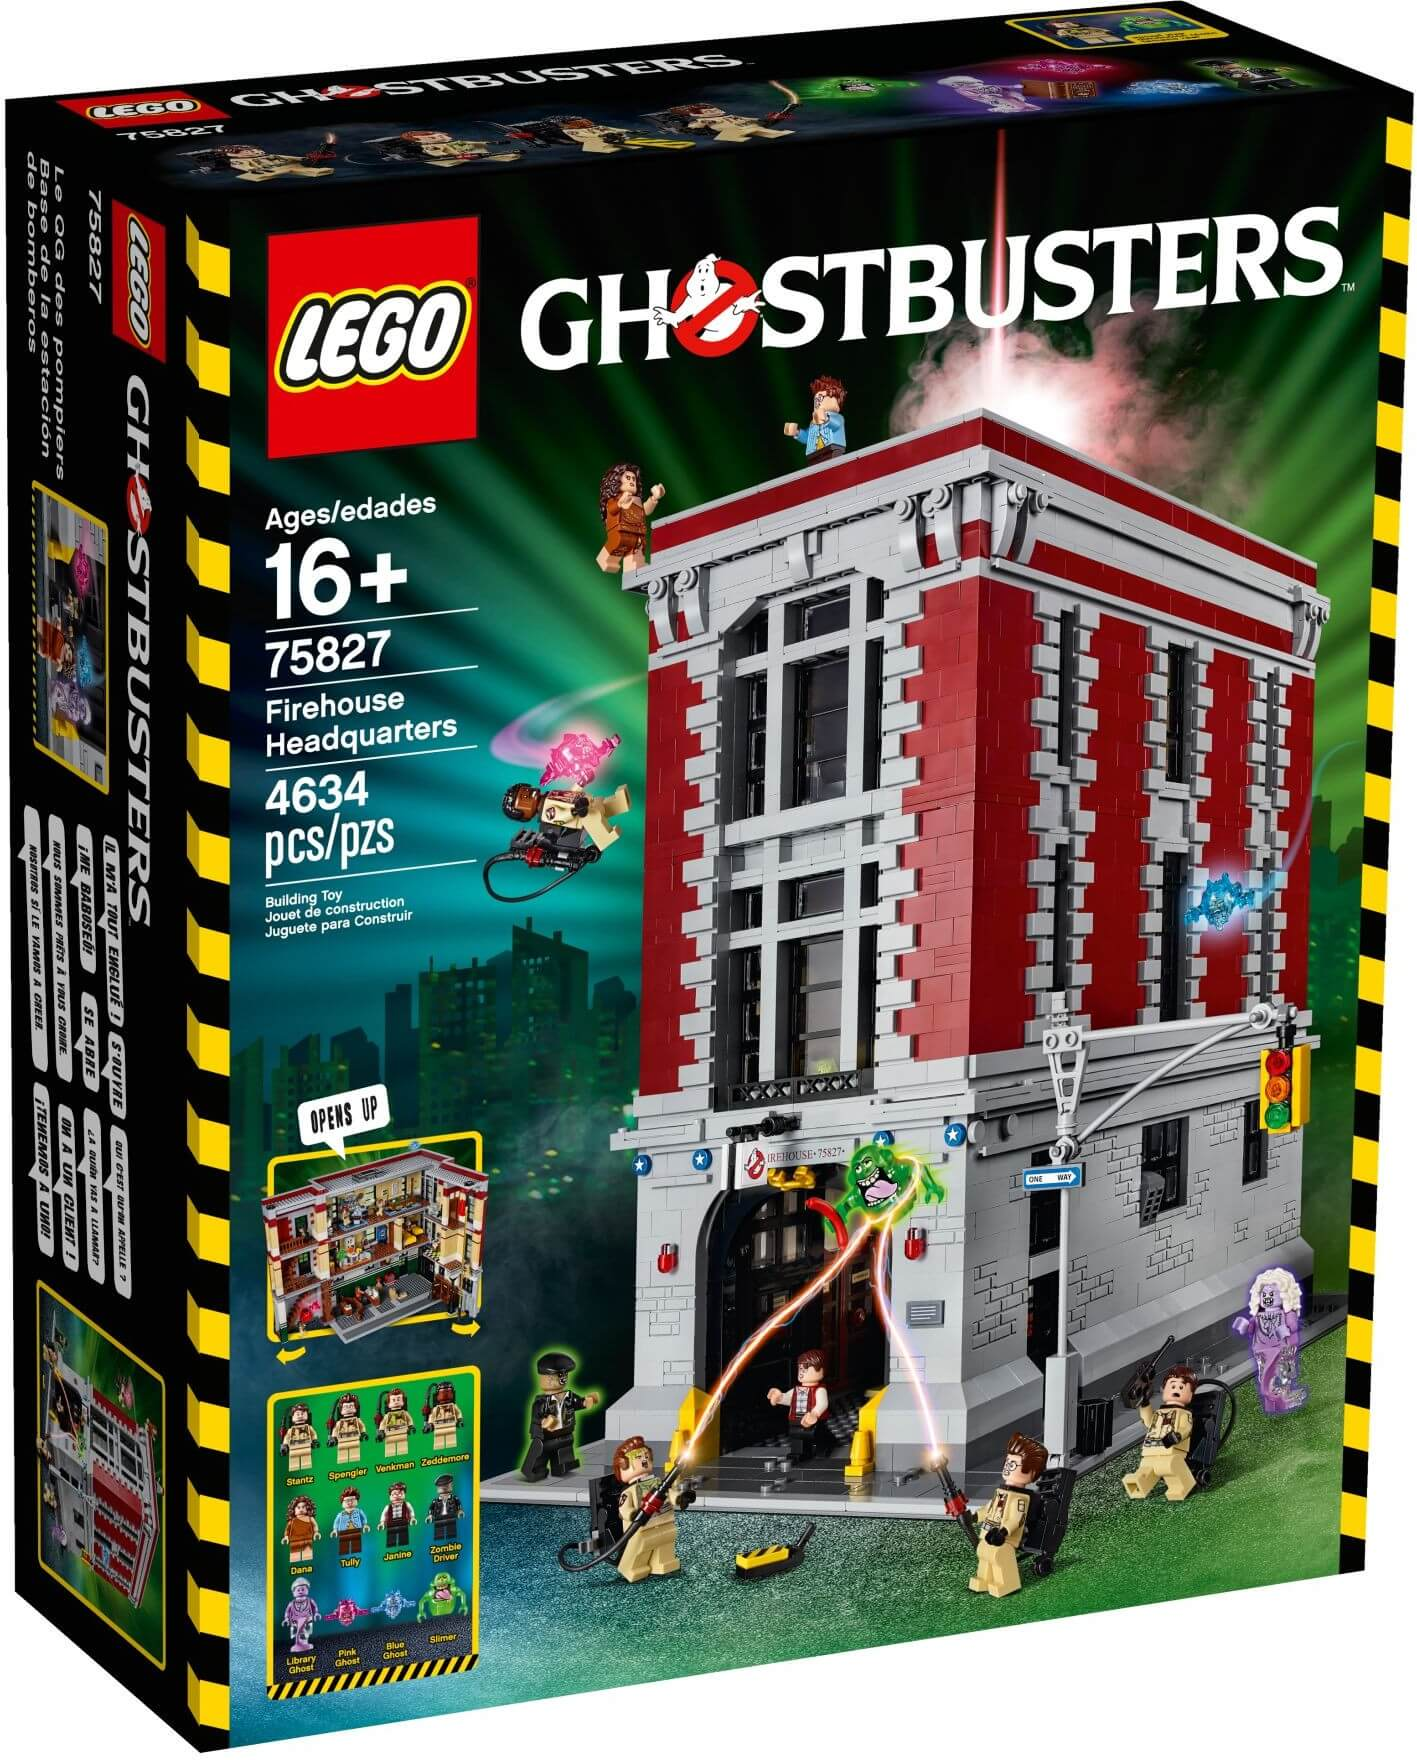 Mua đồ chơi LEGO 75827 - LEGO The Ghostbusters 75827 - Trạm Cứu Hỏa của biệt đội Ghostbusters (LEGO Ghostbusters Exclusives Firehouse Headquarters 75827)